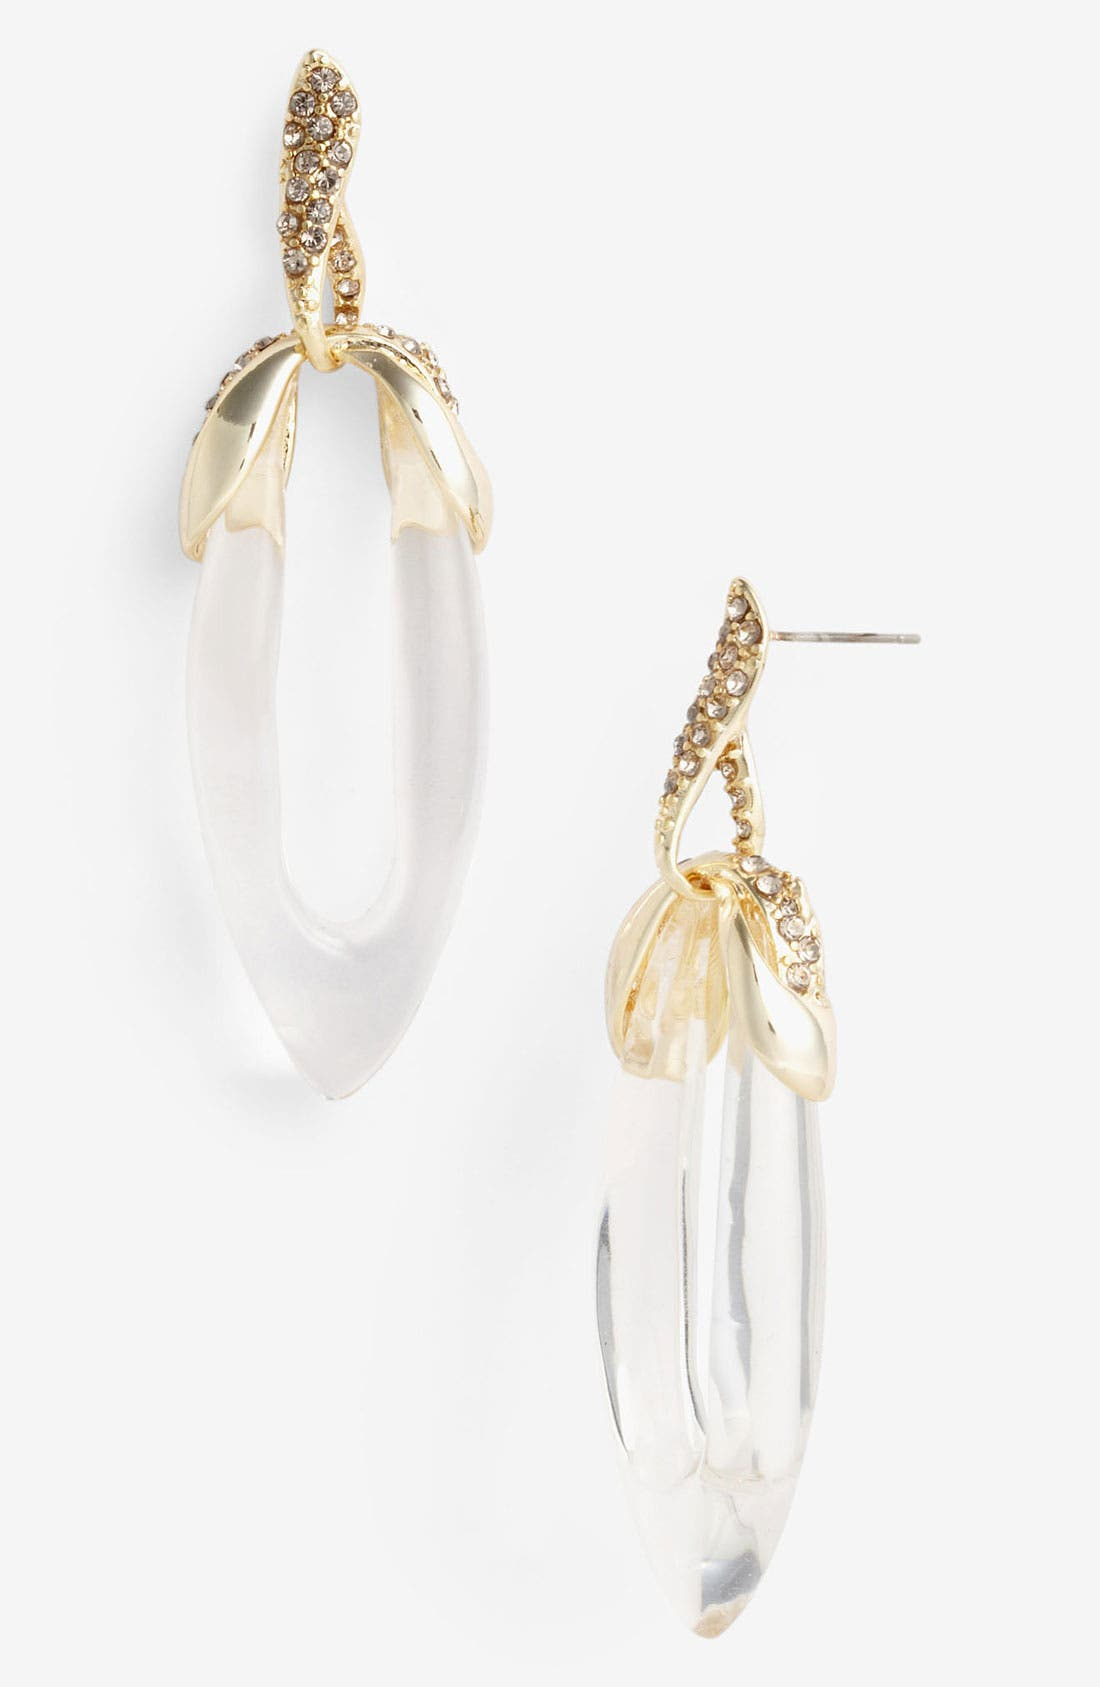 Alternate Image 1 Selected - Alexis Bittar 'Mod' Crystal Twined Drop Earrings